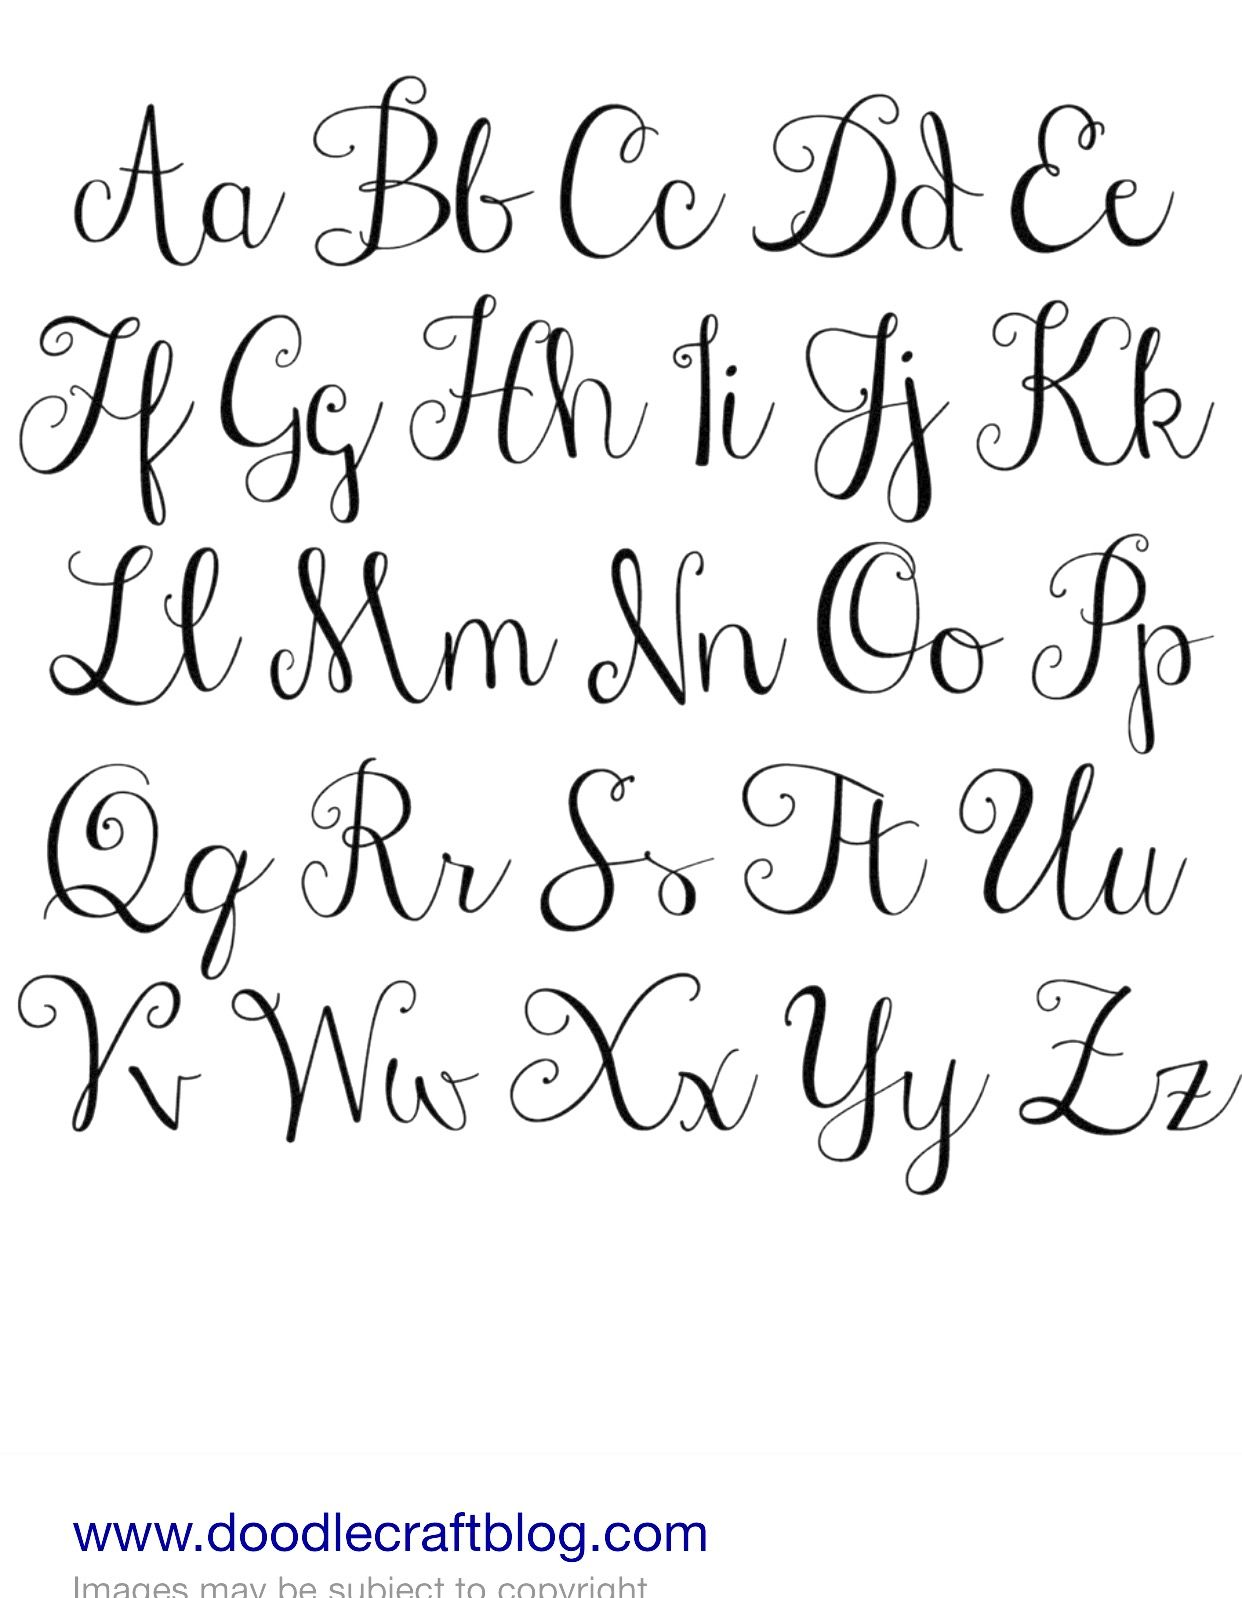 Old Calligraphy Font Free Pin By Shelley Stefan On Calligraphy Pinterest